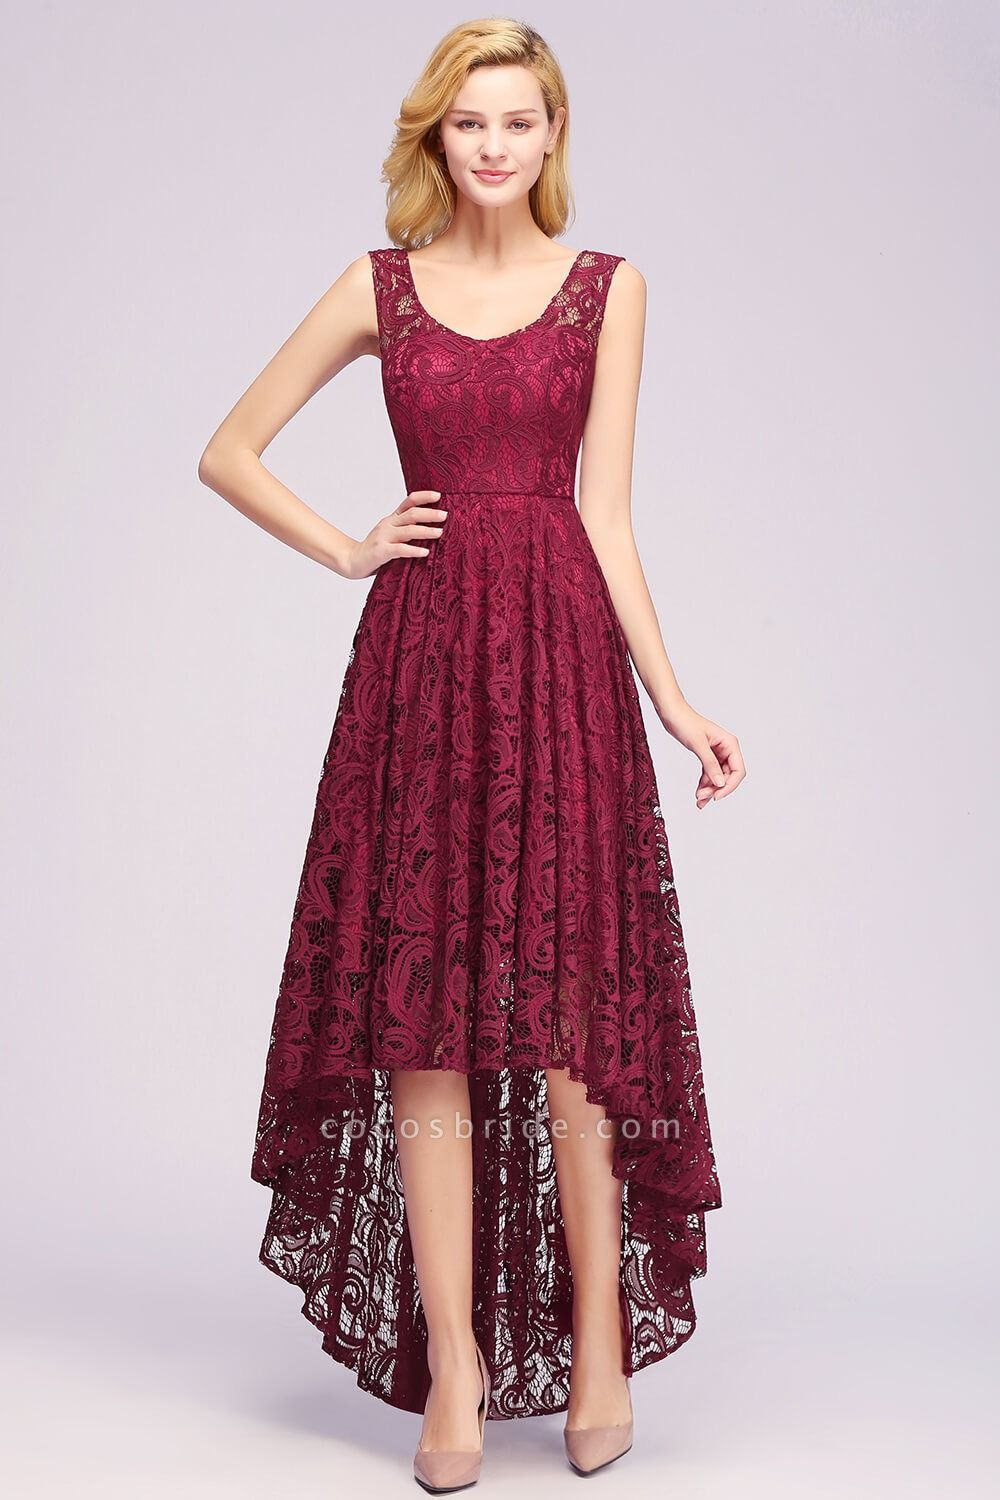 Elegant A-line Sleeveless Crew Hi-lo Lace Dress